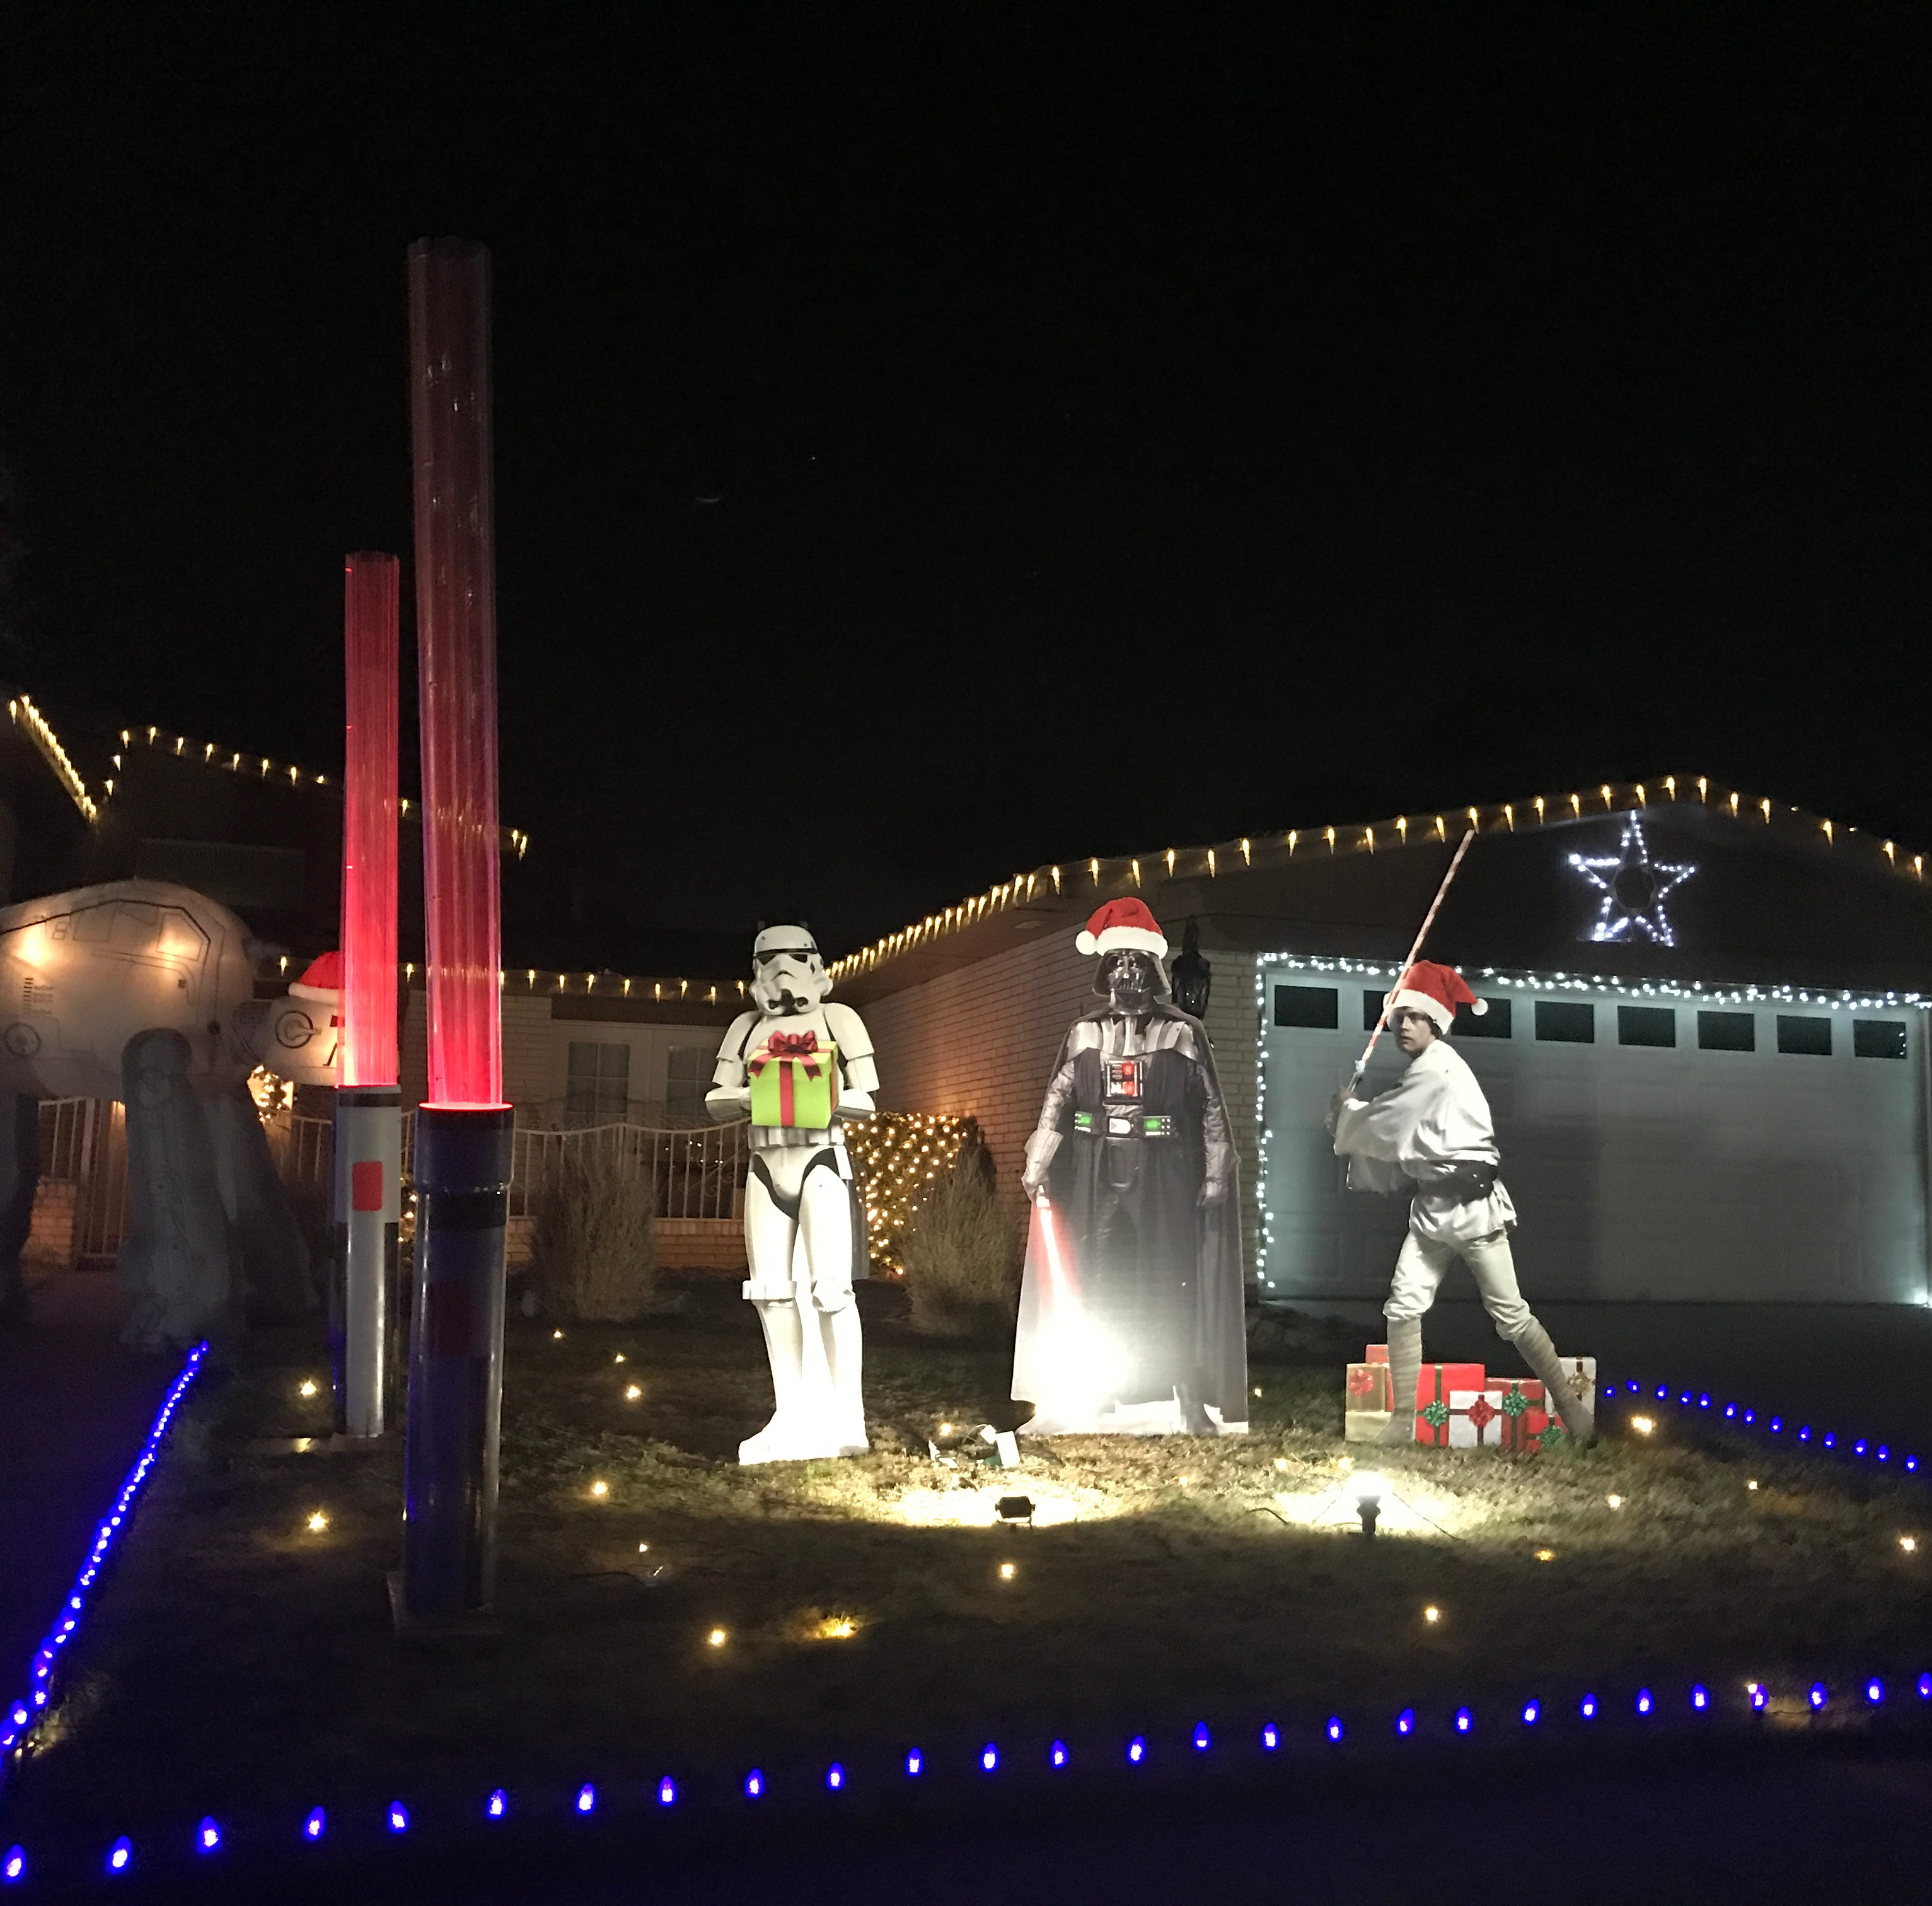 Christmas traditions in El Paso include seeing Eastridge, Fred Loya light shows